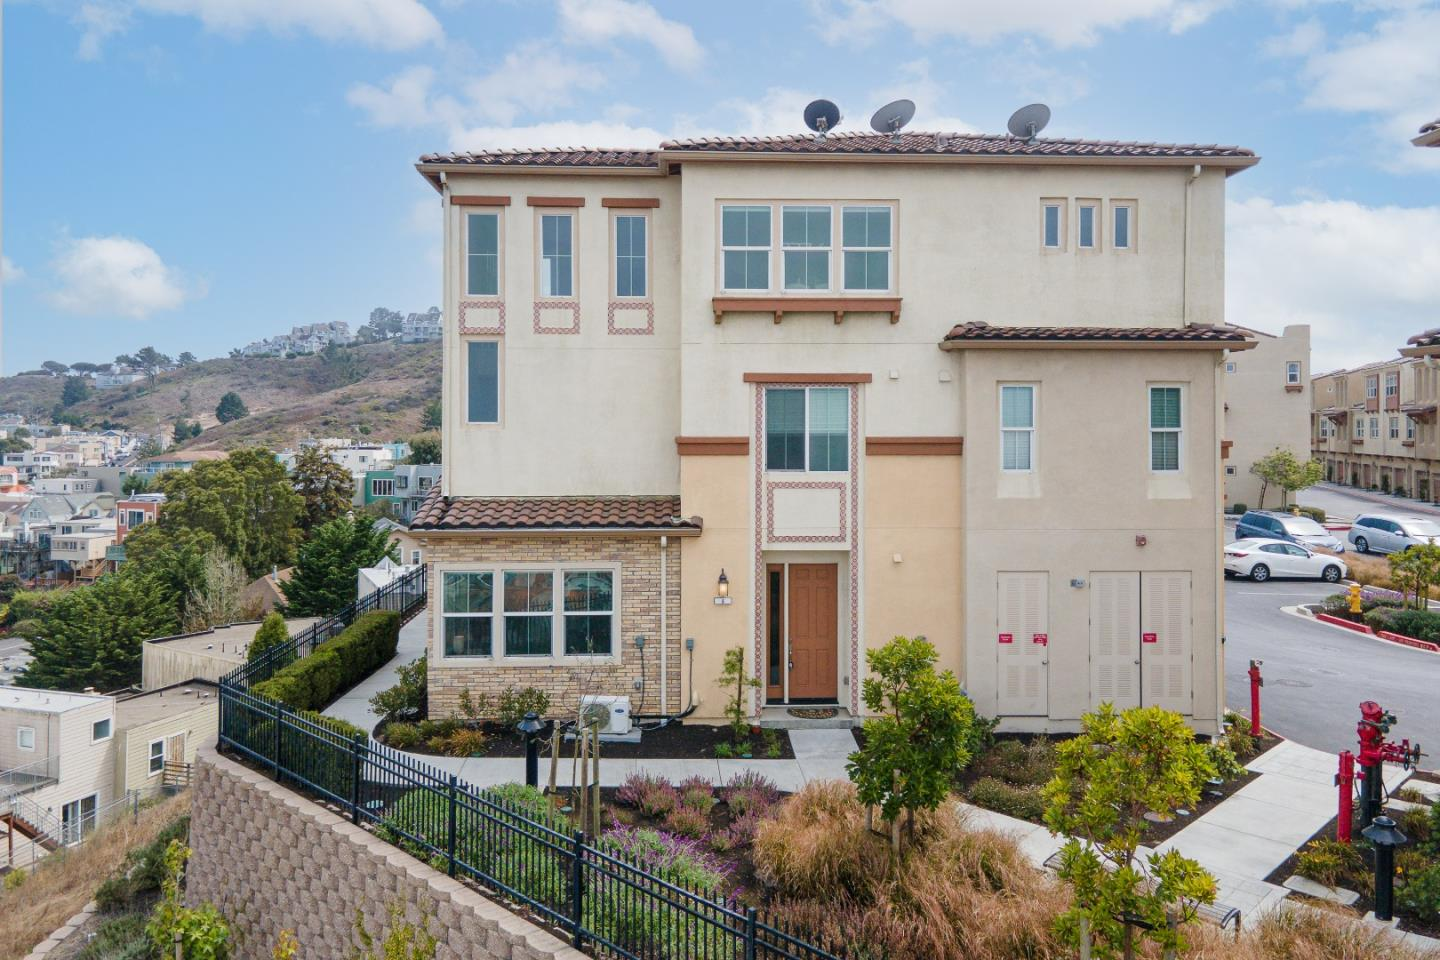 """THIS IS A MUST SEE!! Modern & Move-in-ready, 2beds/2.5baths + 1 open bonus room on 1st floor, home built in 2017, in sought-after gated community at the top of the hills, standing at the balcony enjoying """"Million Dollar Views"""" of San Francisco bay and Daly City. On upper level, entering into an open living rm with abundant natural lights, dining area & chefs kitchen with abundance of cabinets stainless steel appliances, quartz stone countertops and seating bar. The generous sized master-room including walk in closet and dual sinks & shower tub, stall bath. Features, dual pane windows, AC/Central Heat, in unit laundry, modern guest bath & attached two car garage w/ storage, pre-wired for EV charging, tankless water heater. Amazingly convenient location in quiet retreat-like secure neighborhood with amazing views, near shopping, restaurants, BART, and minutes to HWY101/280, San Francisco downtown. Any question, text/call 510-630-8121. OPEN House: 9/17-9/19."""